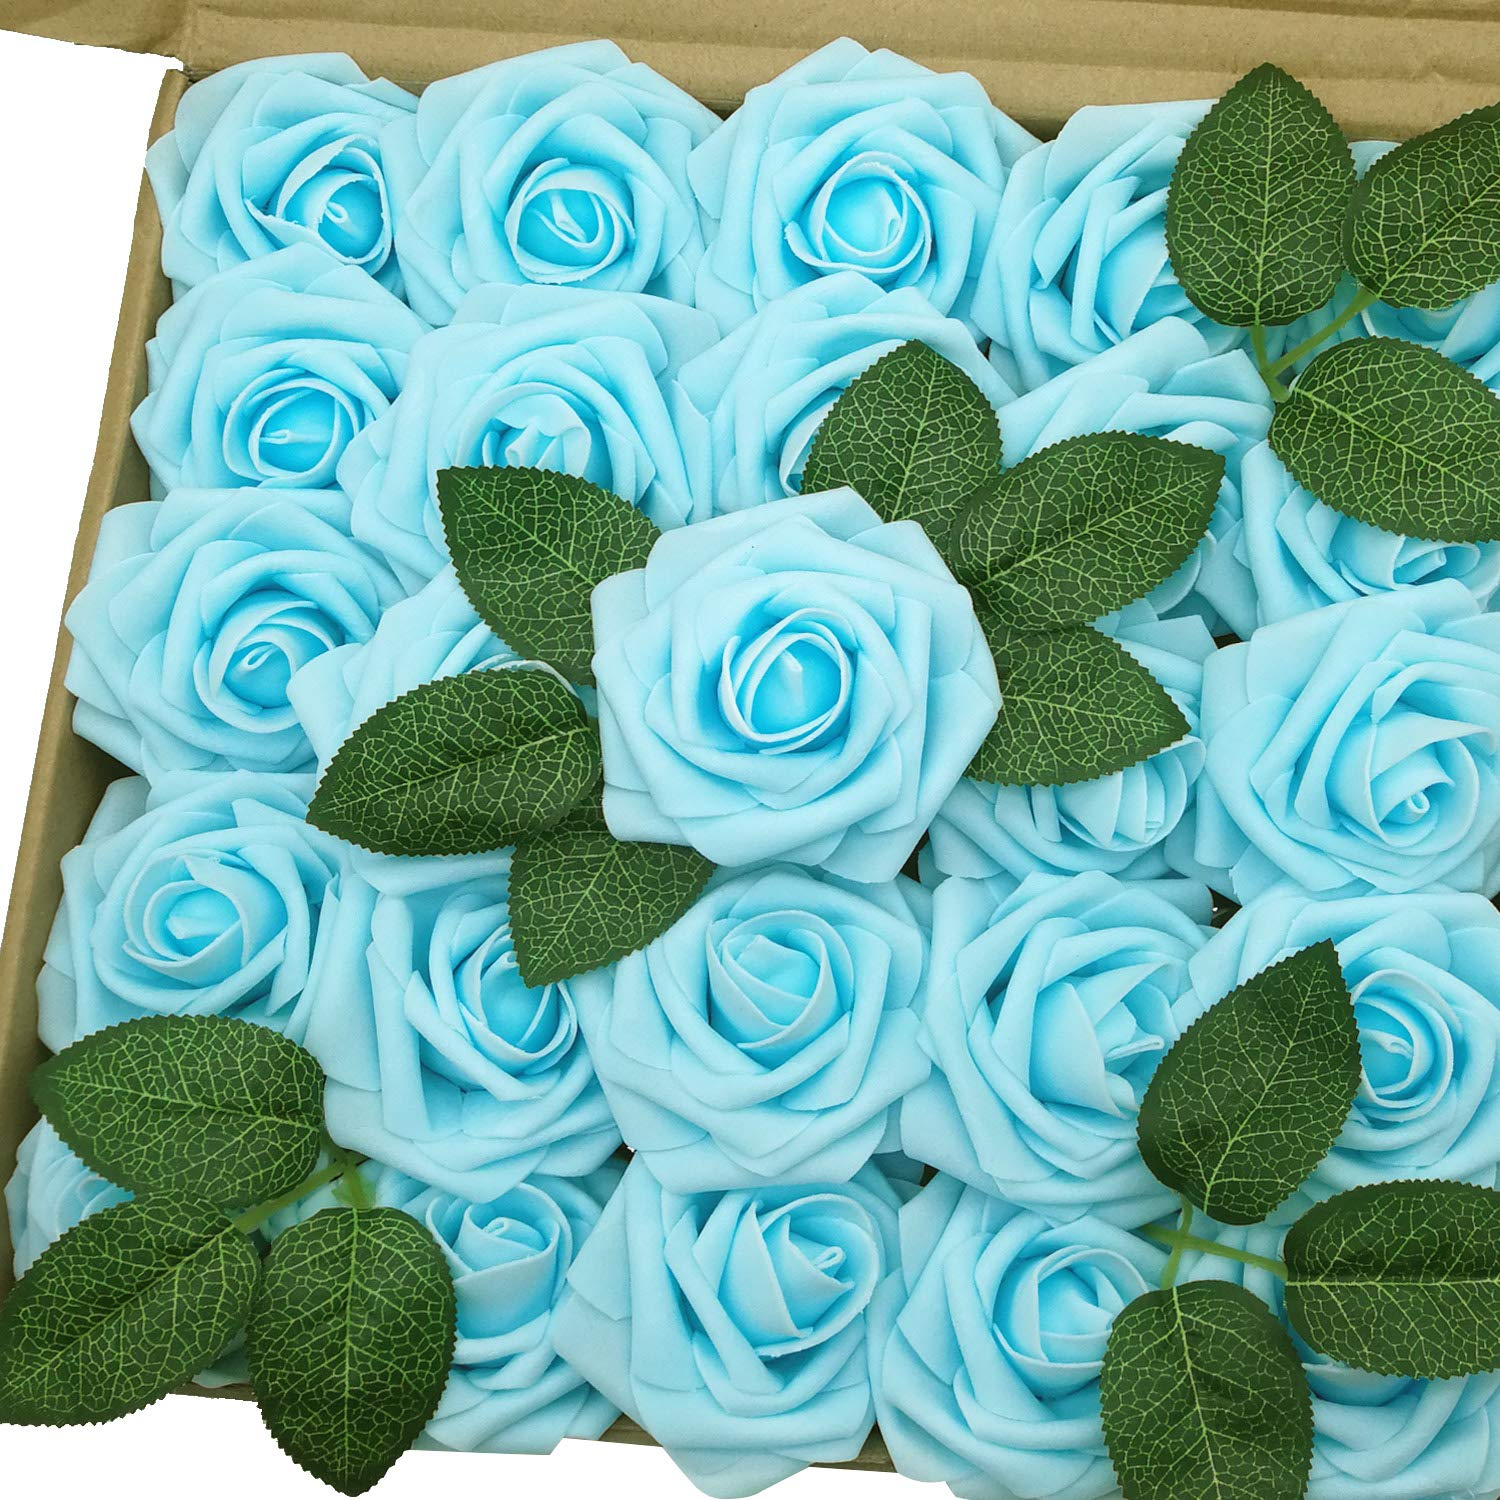 Jing-Rise-Wedding-Bouquets-Rose-50PCS-Artificial-Flowers-Foam-Roses-With-Stem-for-DIY-Bridal-Bridesmaids-Bouquets-Wedding-Baby-Shower-Home-Birthday-Party-Anniversary-Floral-Decoration-Light-Blue